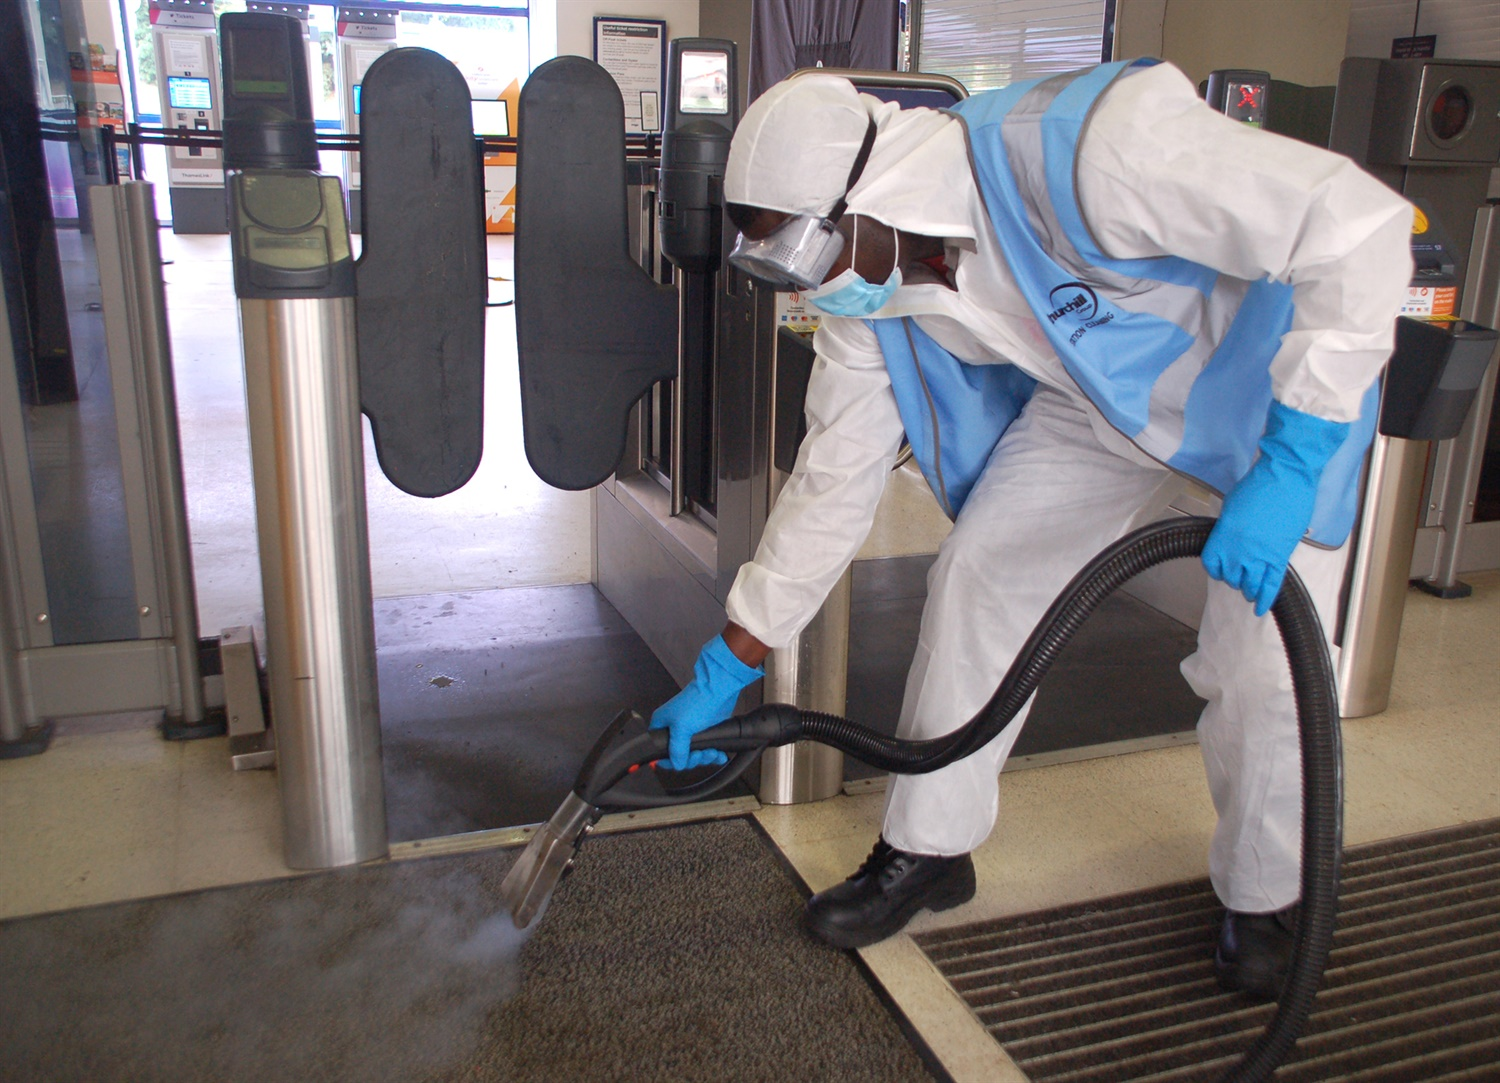 Dry steam cleaning at St Albans, Thameslink